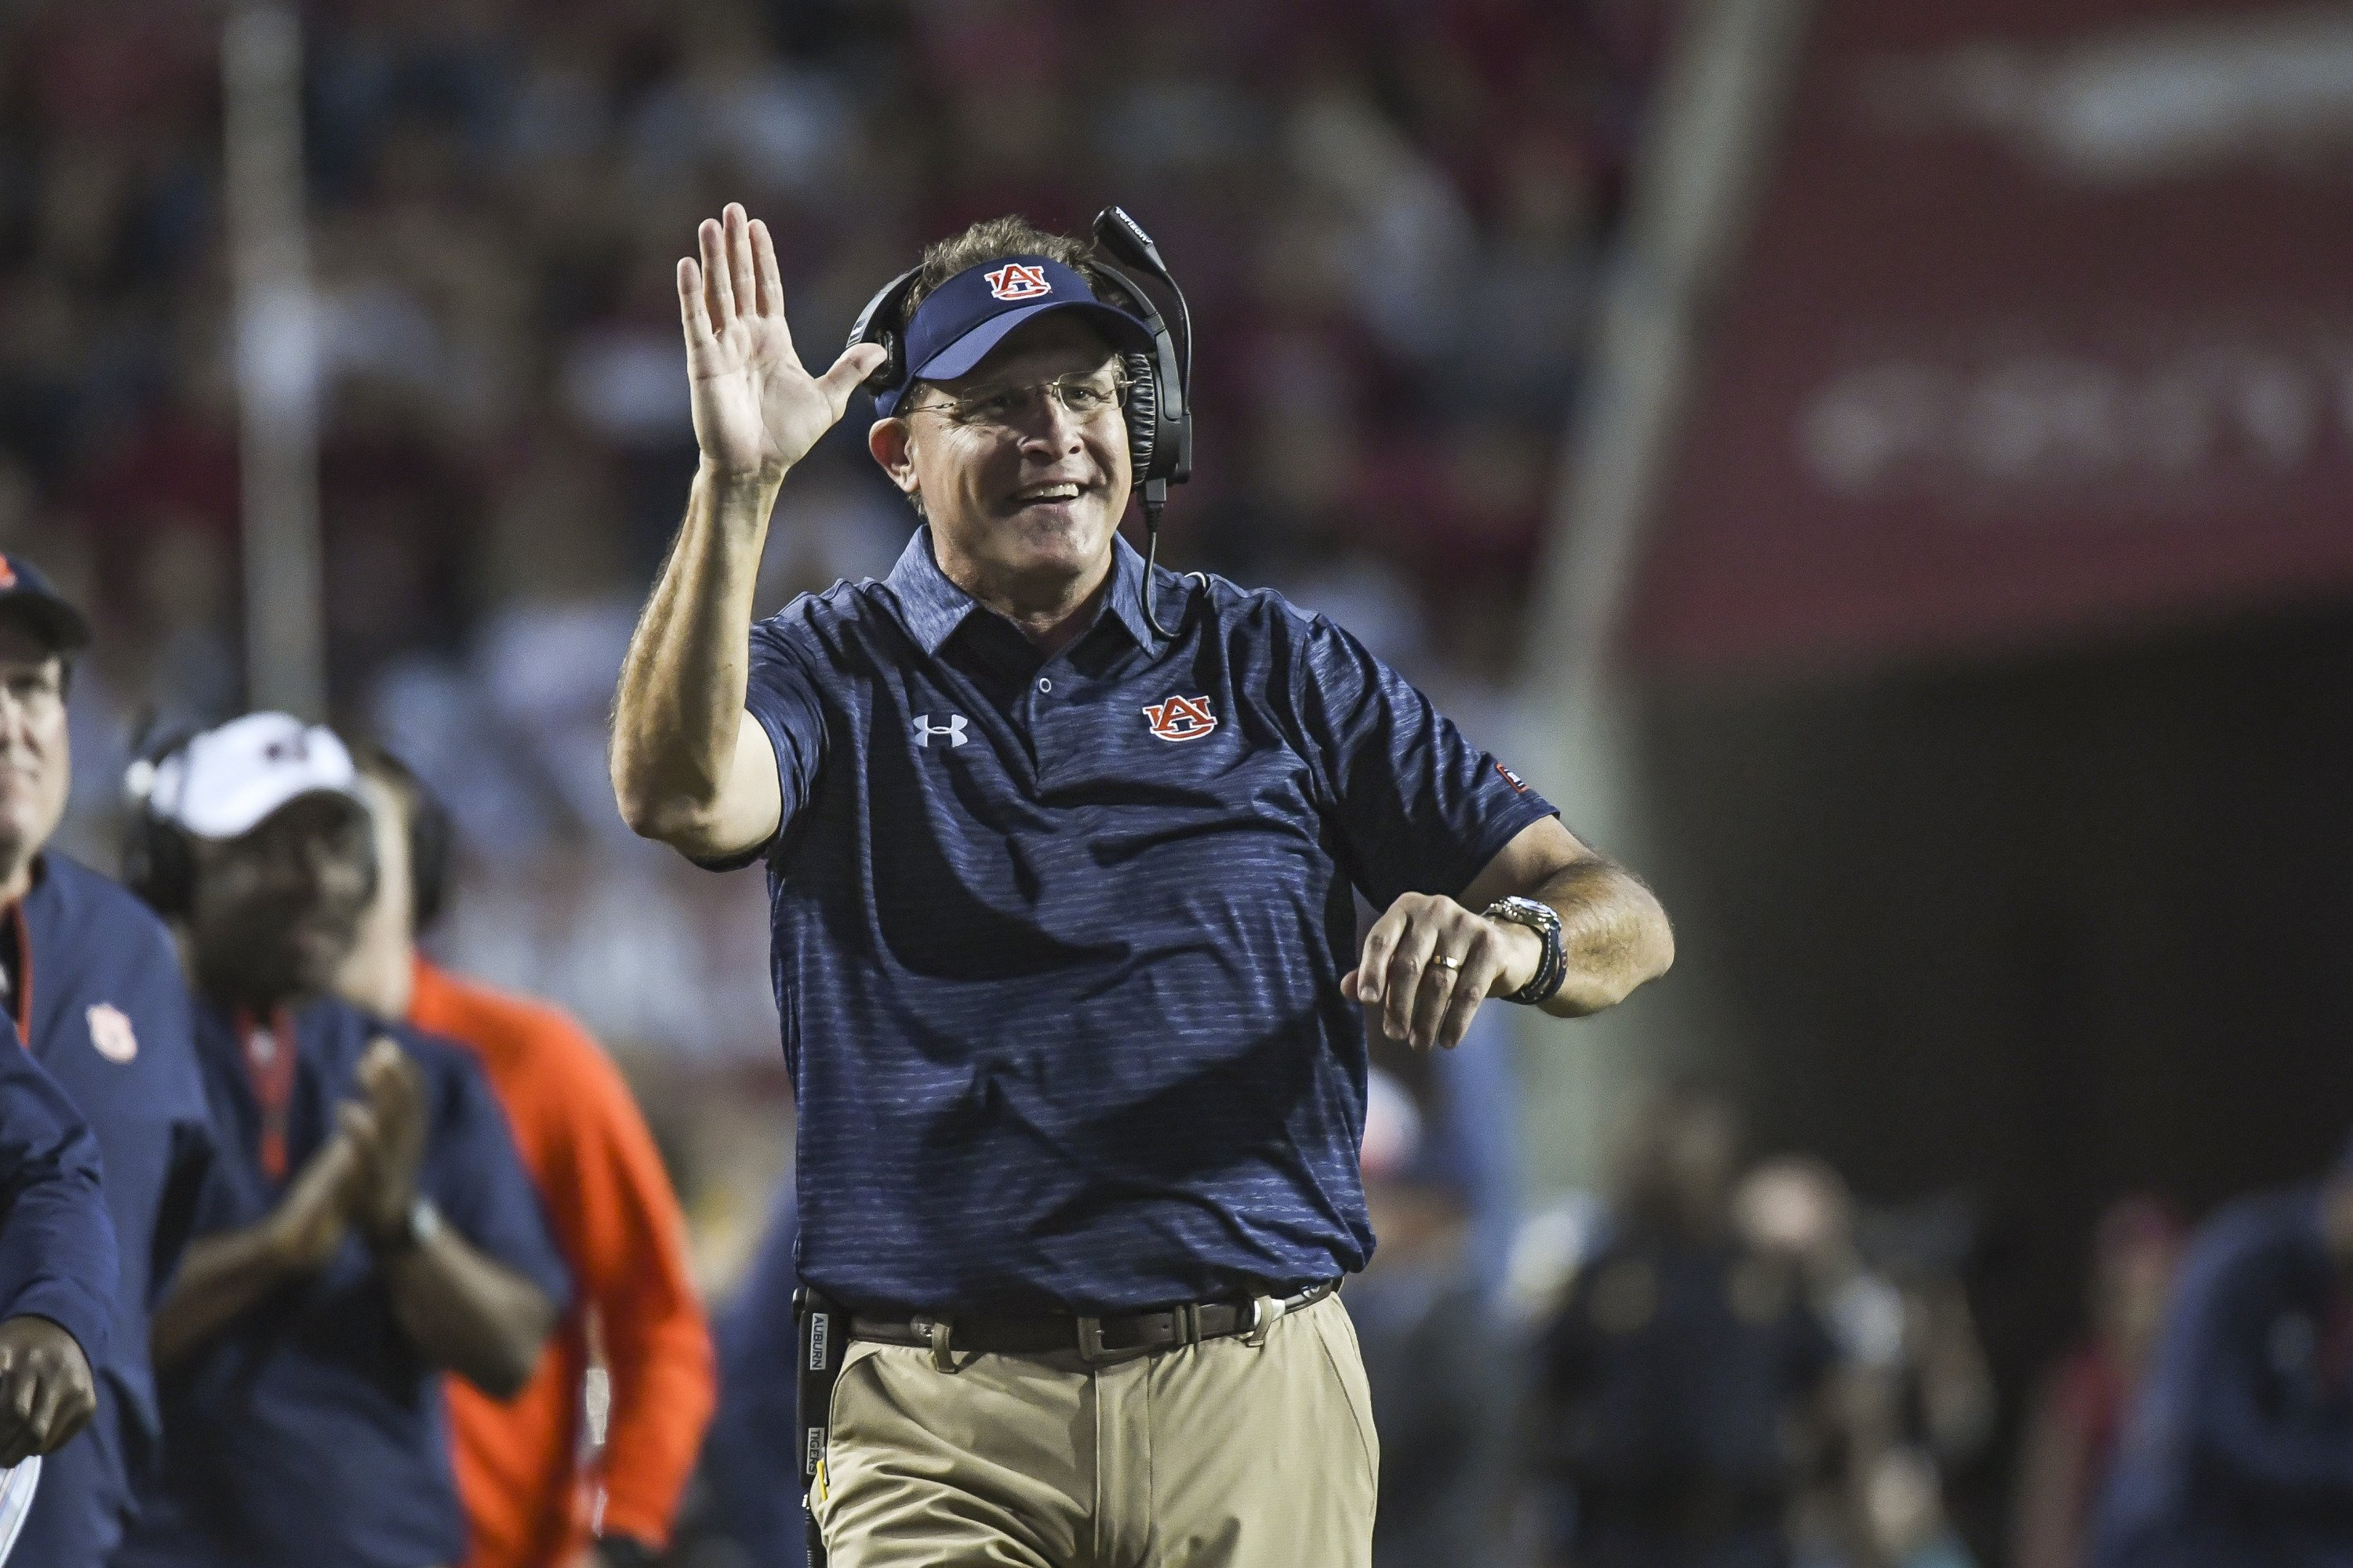 2019 auburn tigers football-season win total-over/under-odds-gus malzahn